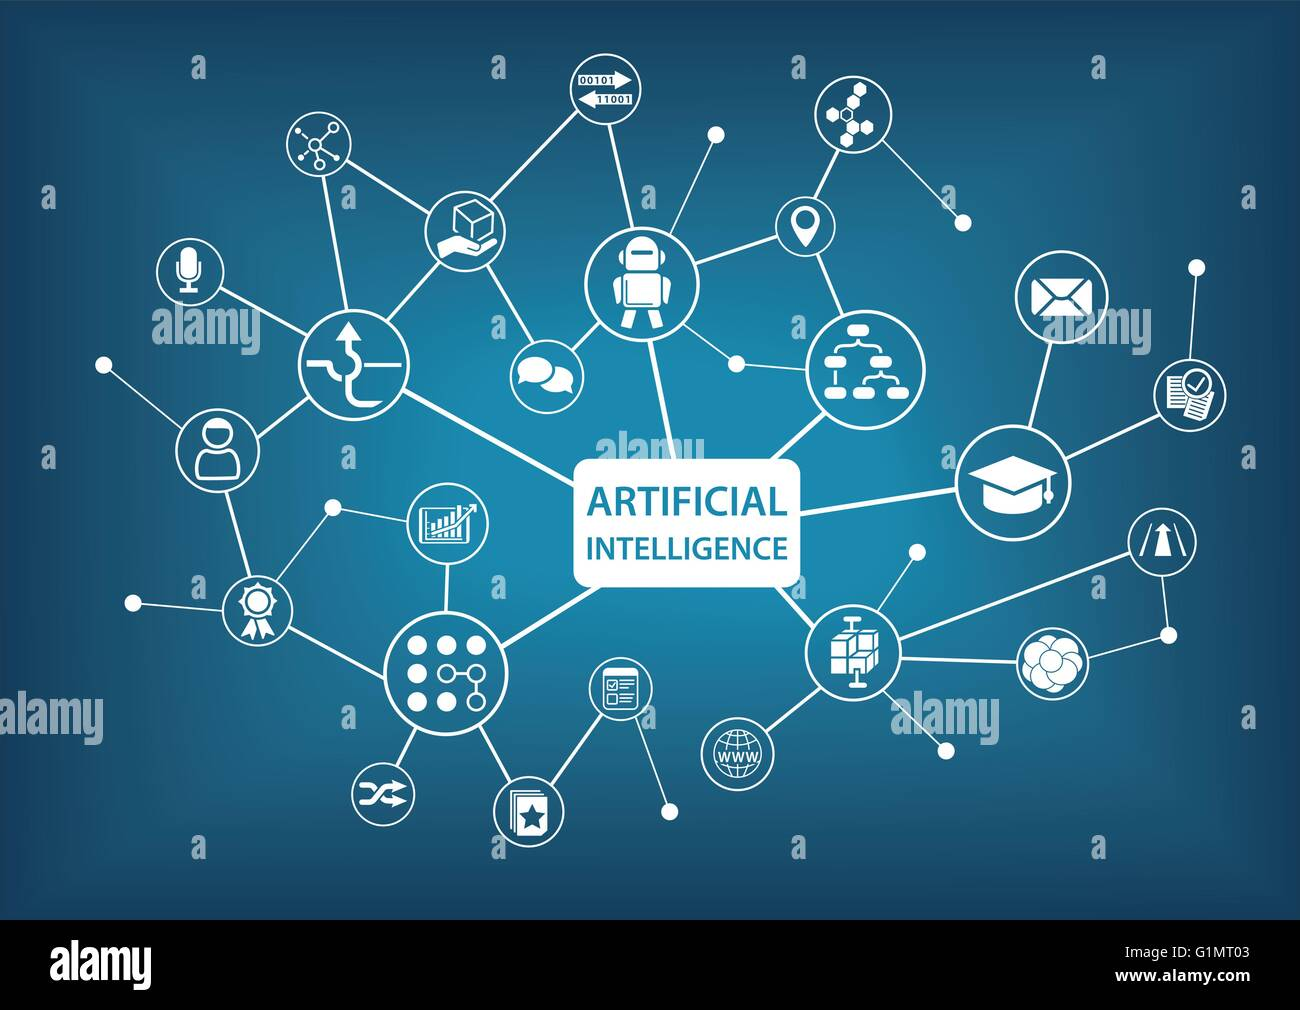 Artificial intelligence ai infographic vector illustration stock artificial intelligence ai infographic vector illustration ccuart Choice Image